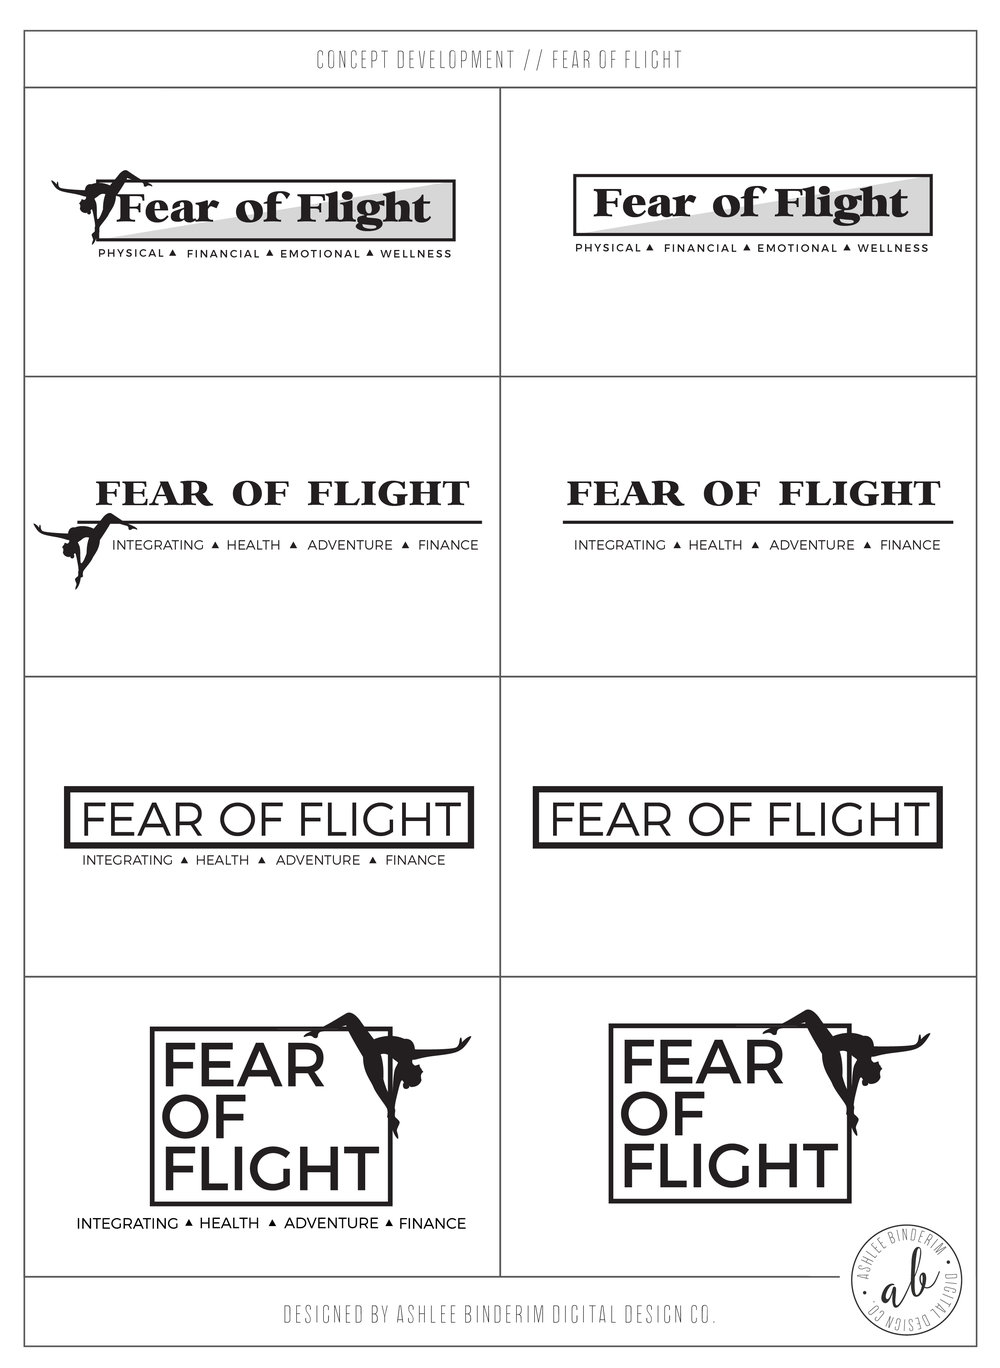 Fear Of Flight Concept Development